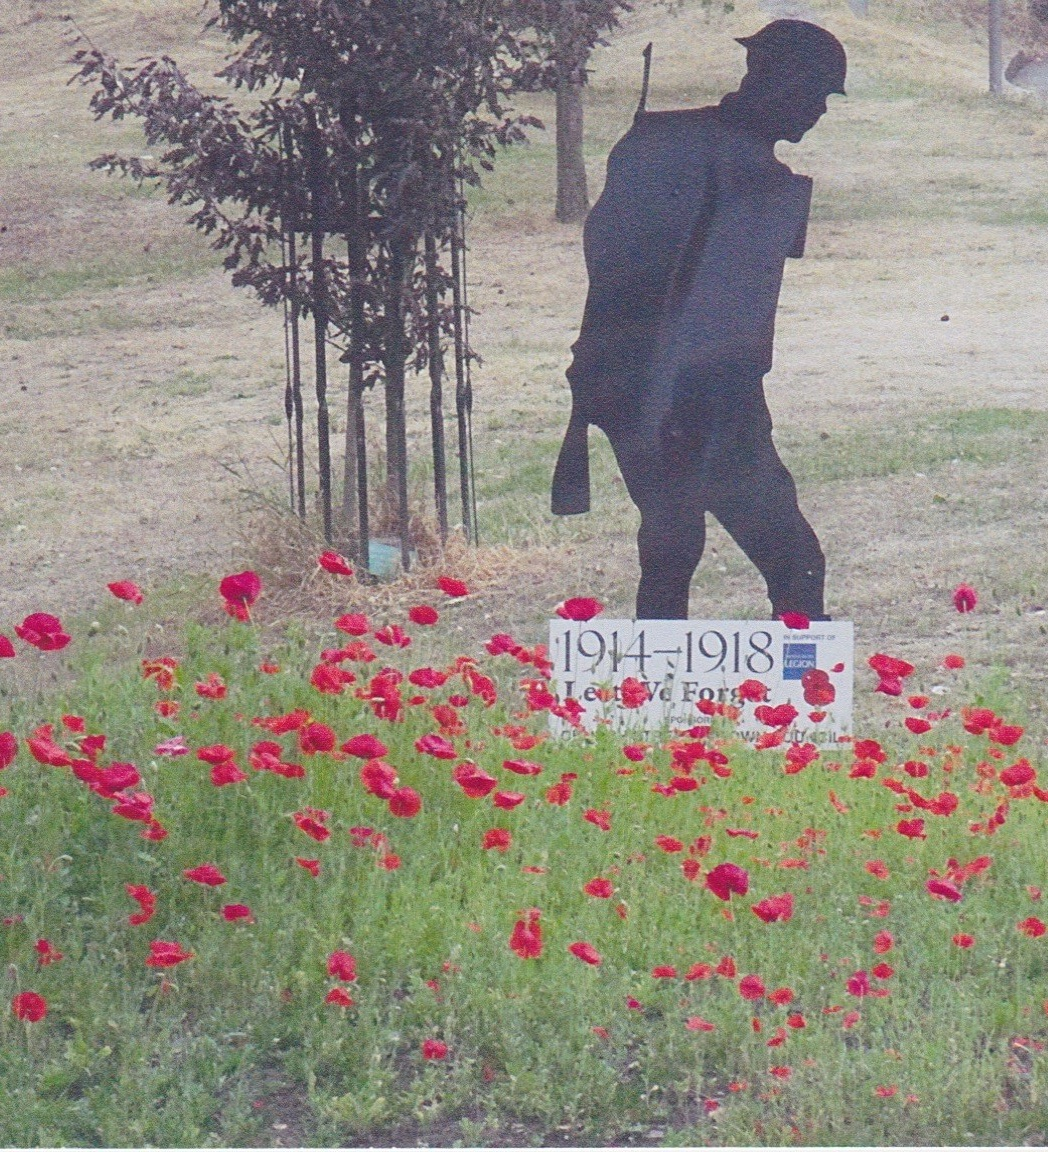 Silhouette of soldier in a poppy field